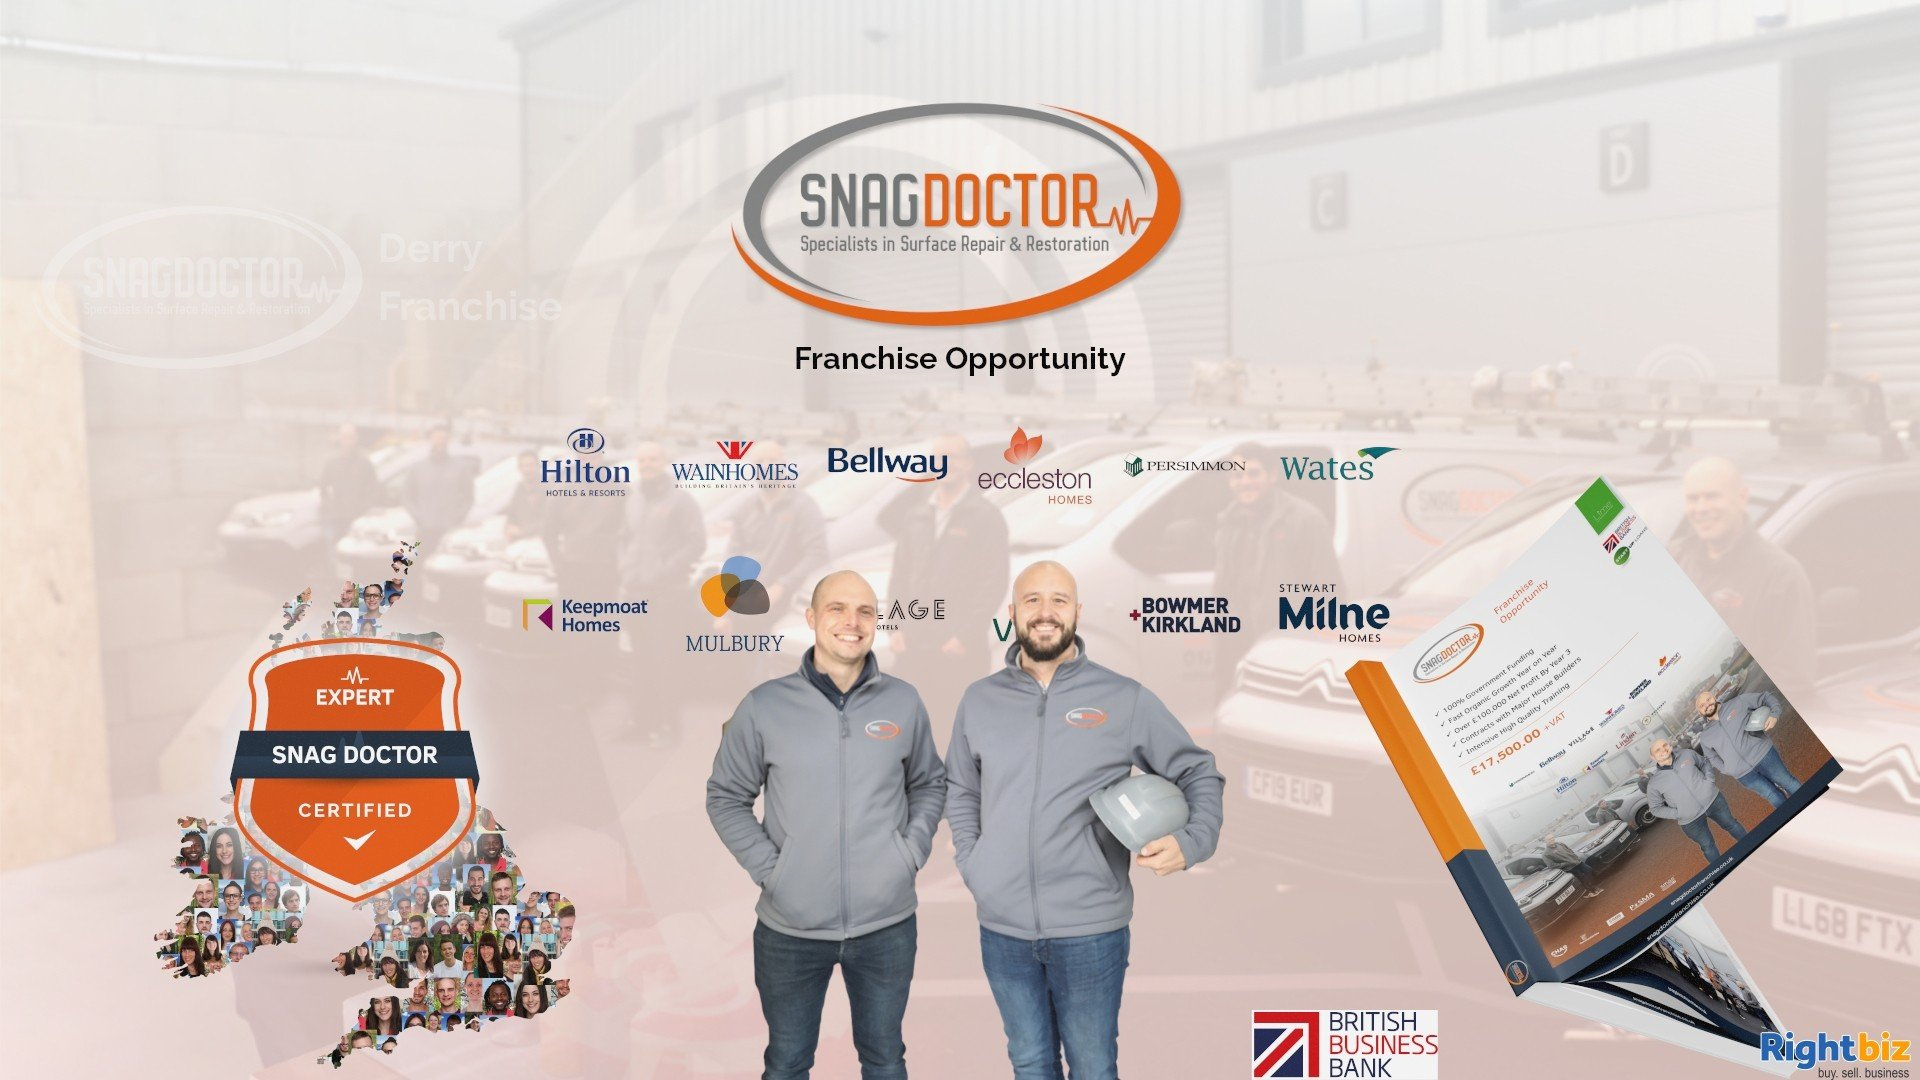 Snag Doctor 100% Govt Funded Franchise in Derry With Huge Demand from Major House Builders - Image 1